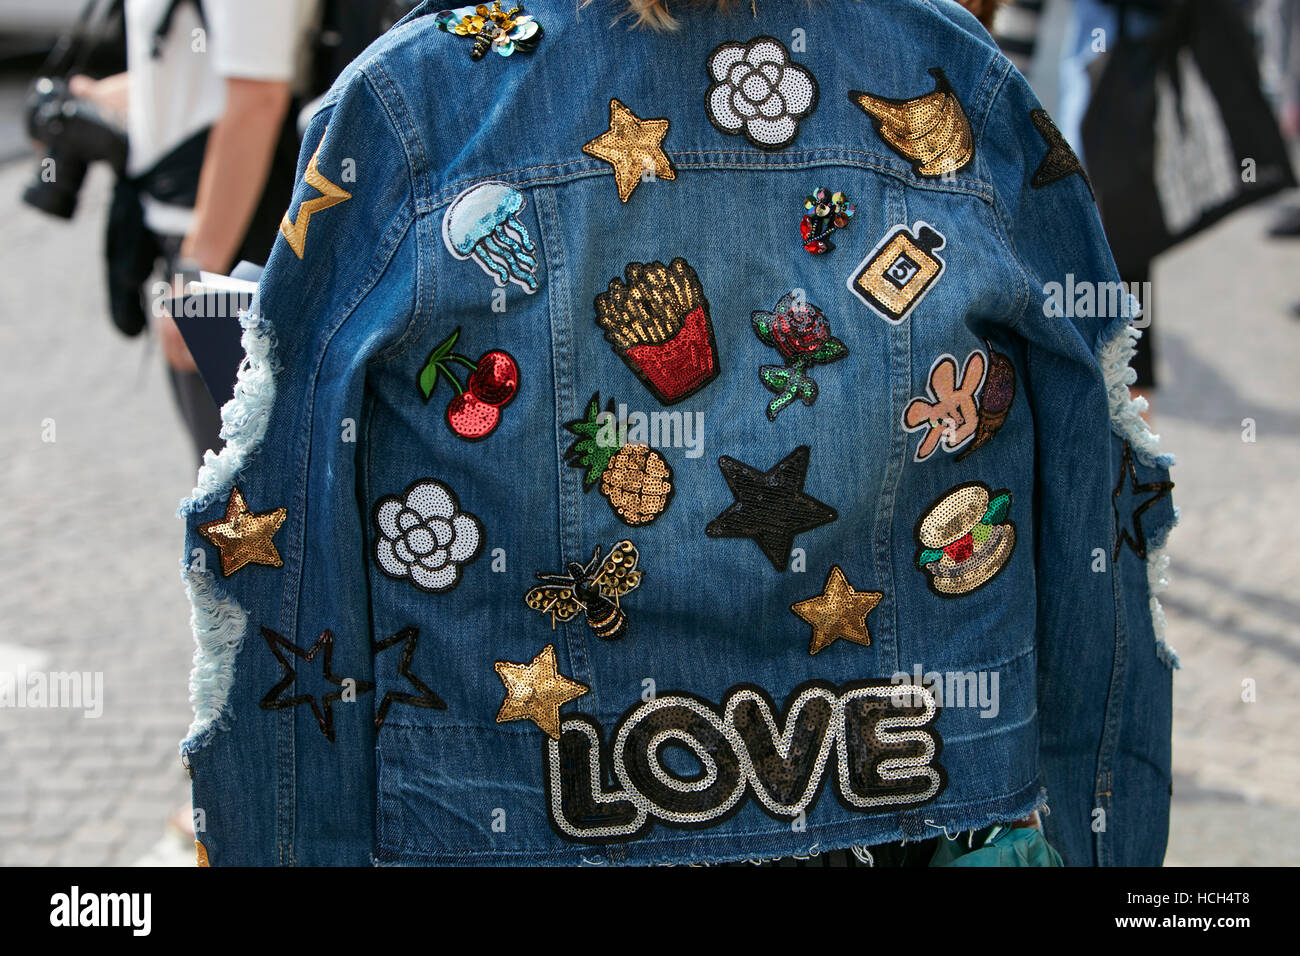 Woman with blue jeans jacket with Love writing before Giamba fashion show, Milan Fashion Week street style on September - Stock Image